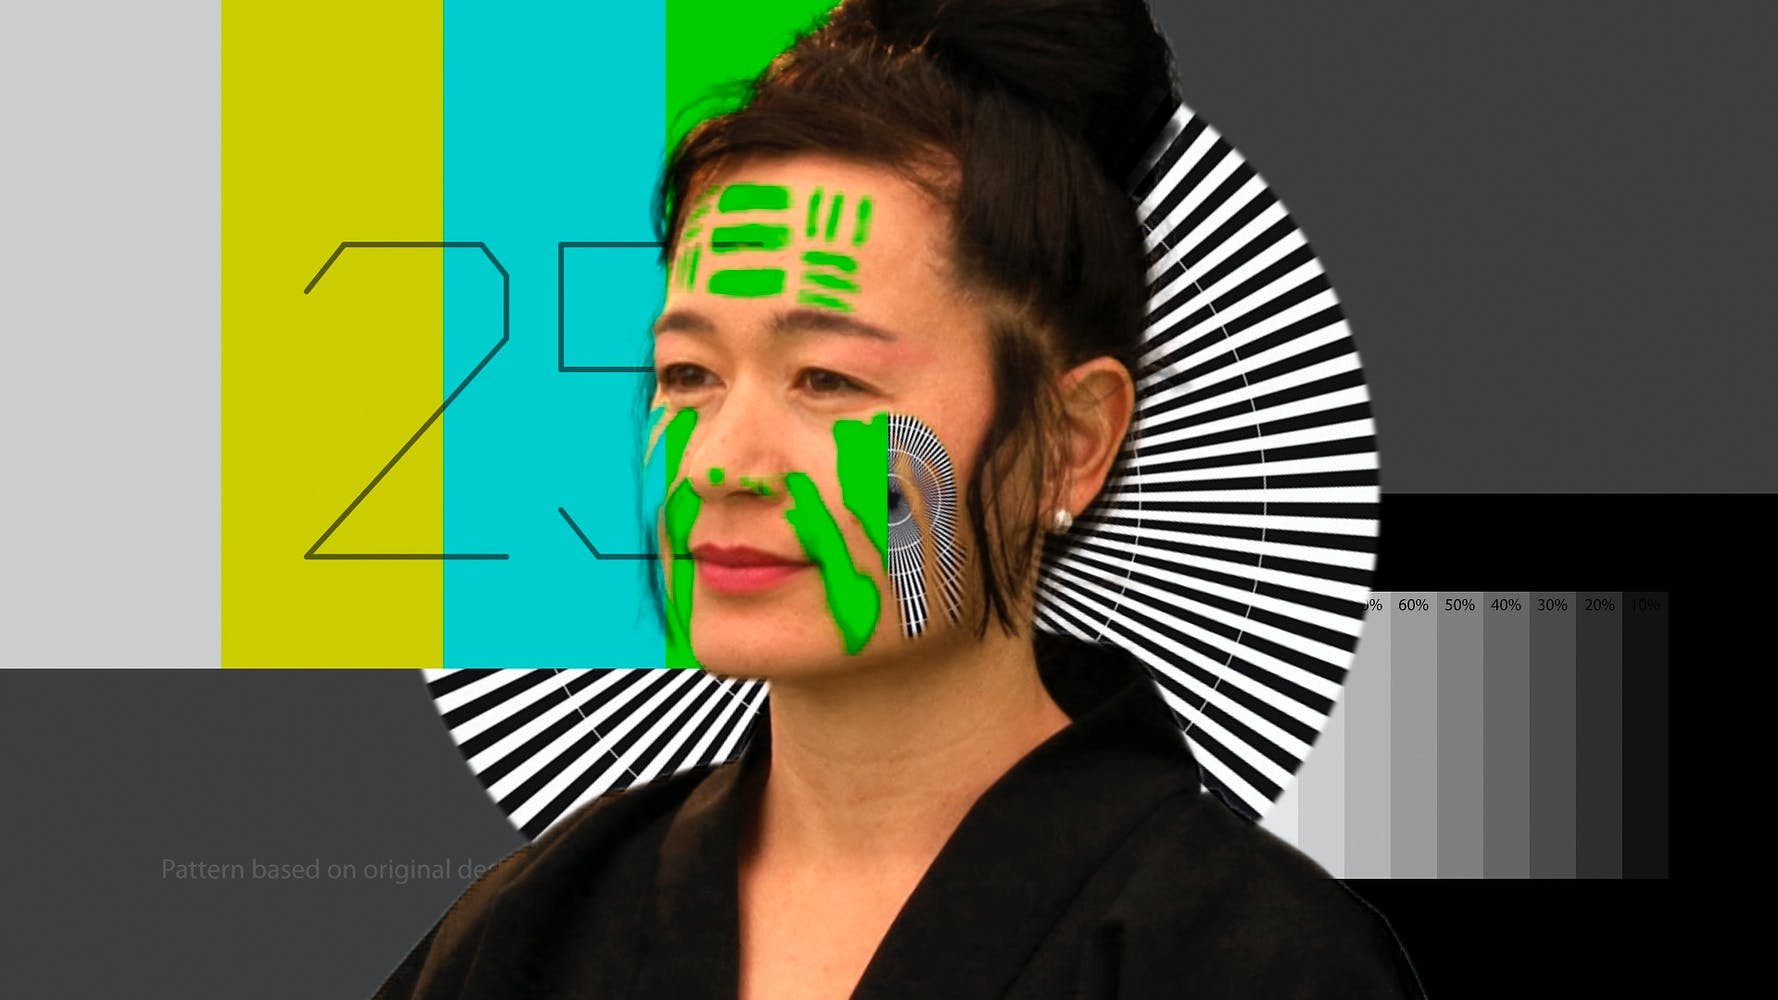 Hito Steyerl, How Not to Be Seen. A Fucking Didactic Educational .Mov File, 2012